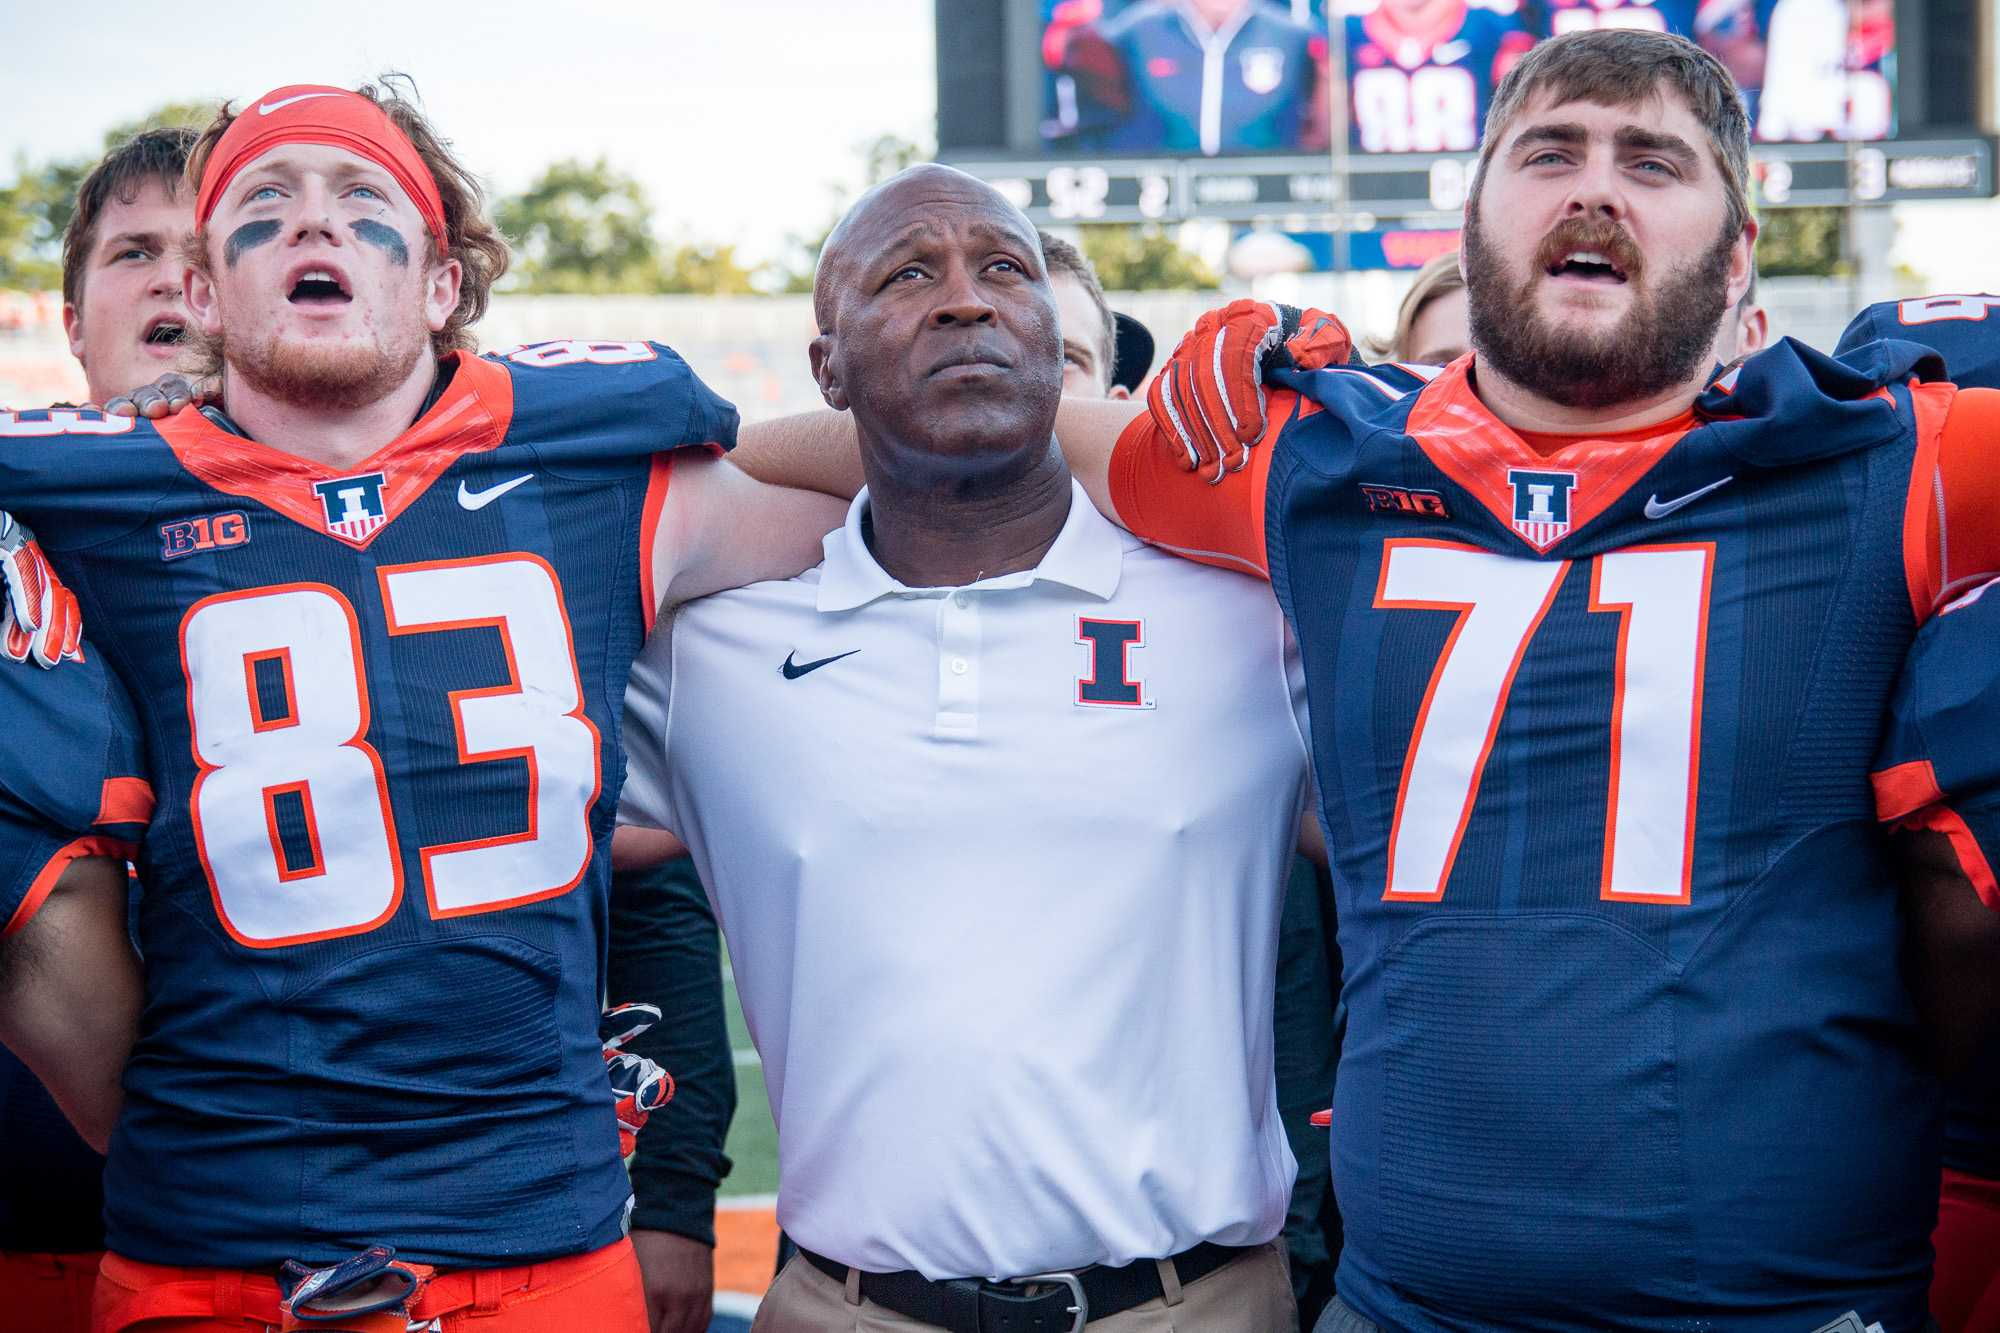 Illinois head football coach Lovie Smith (center) joins tight end Bobby Walker (83) and offensive lineman Joe Spencer (71) in singing Hail to the Orange after the game against Murrary State at Memorial Stadium on Saturday, September 3. The Illini won 52-3.